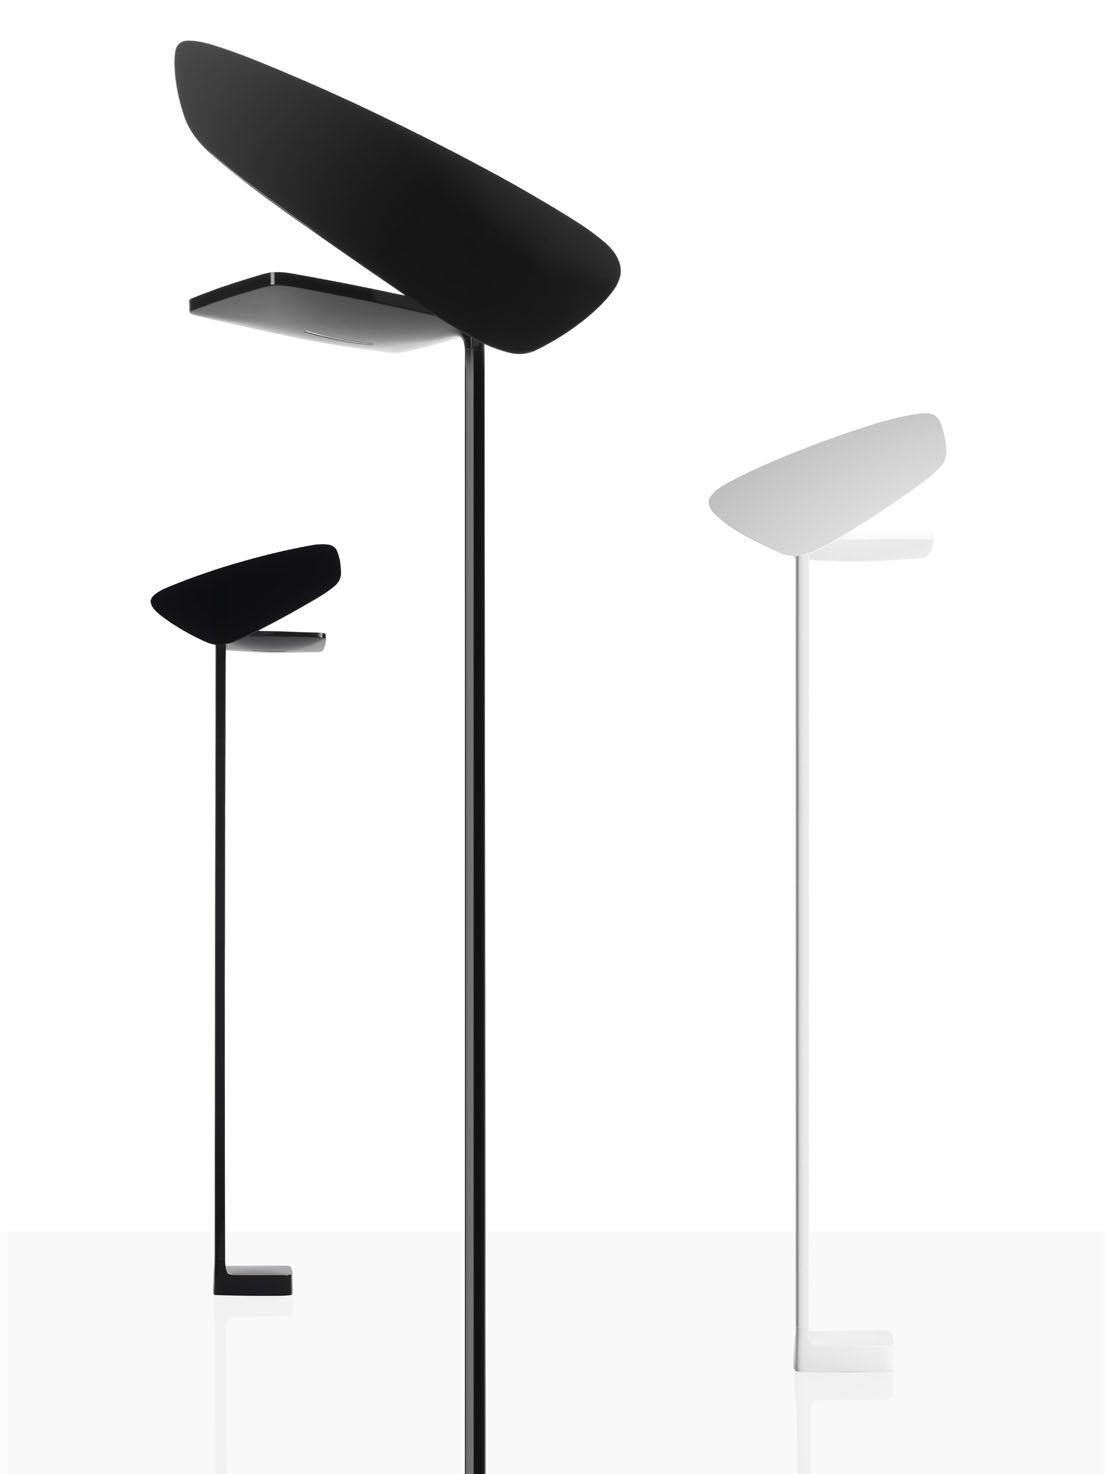 Lightwing, design di Jean Marie Massaud per Foscarini, 2014.